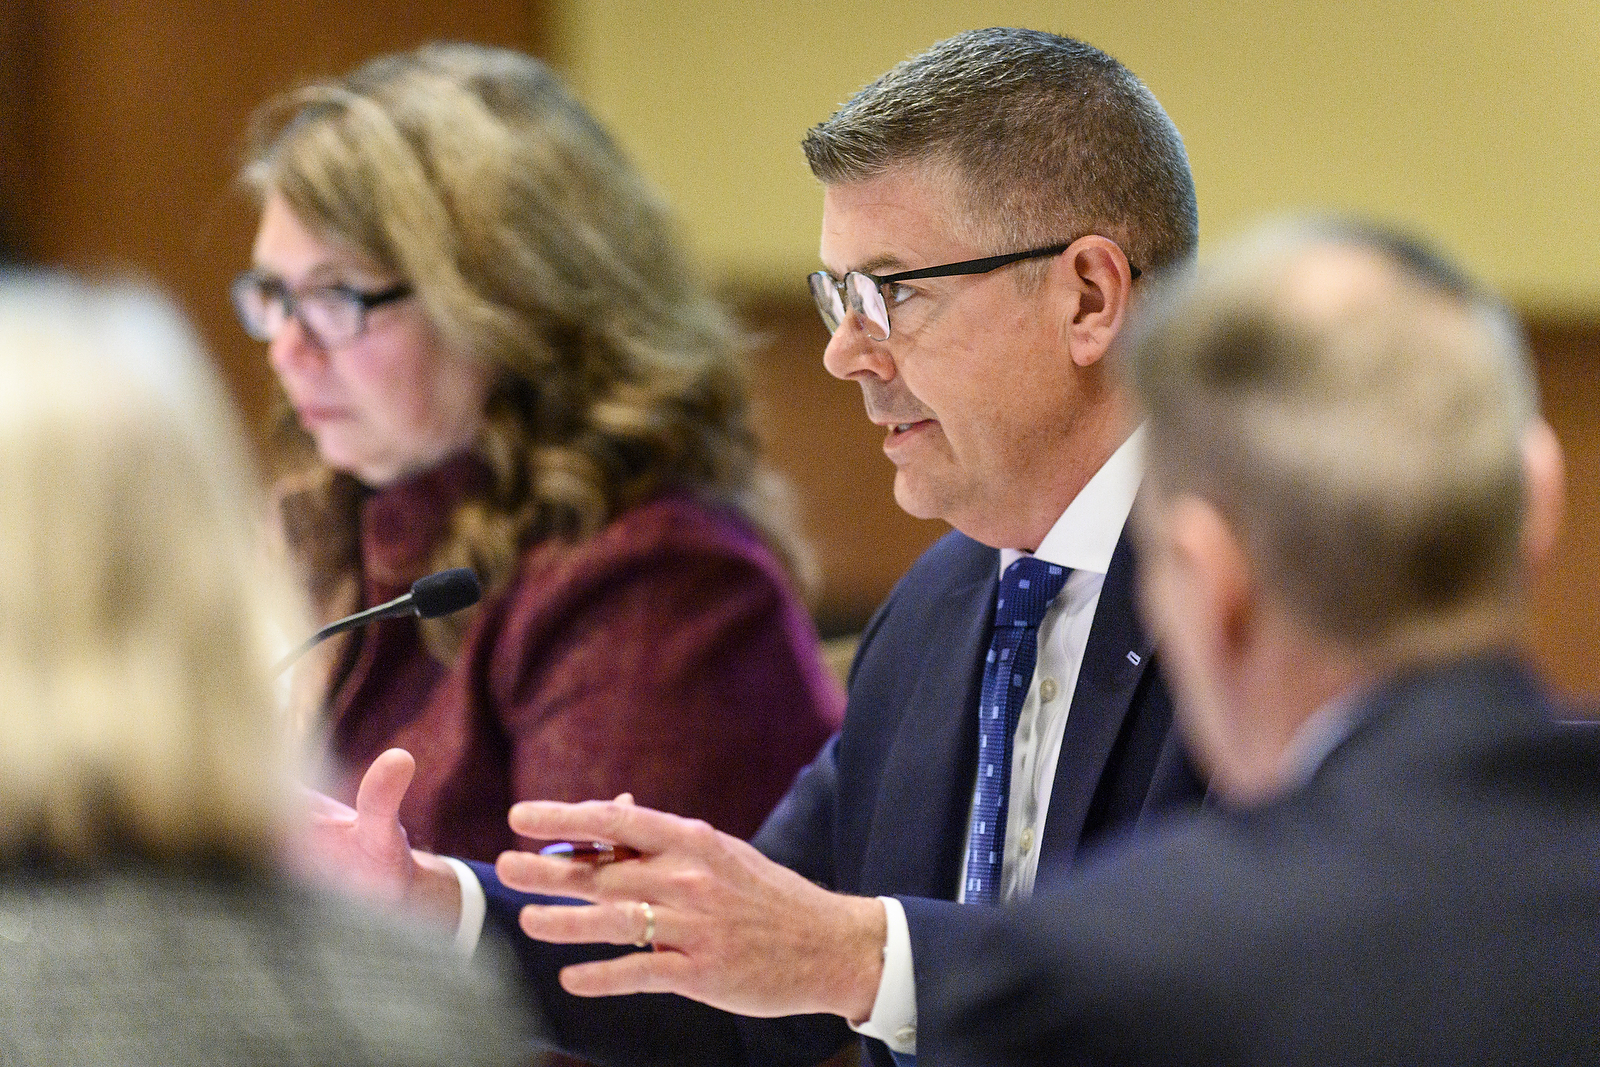 UW System Regent Vice President Drew Petersen speaks at the UW System Board of Regents meeting hosted at Union South at the University of Wisconsin-Madison on Feb. 7, 2019. (Photo by Bryce Richter /UW-Madison)